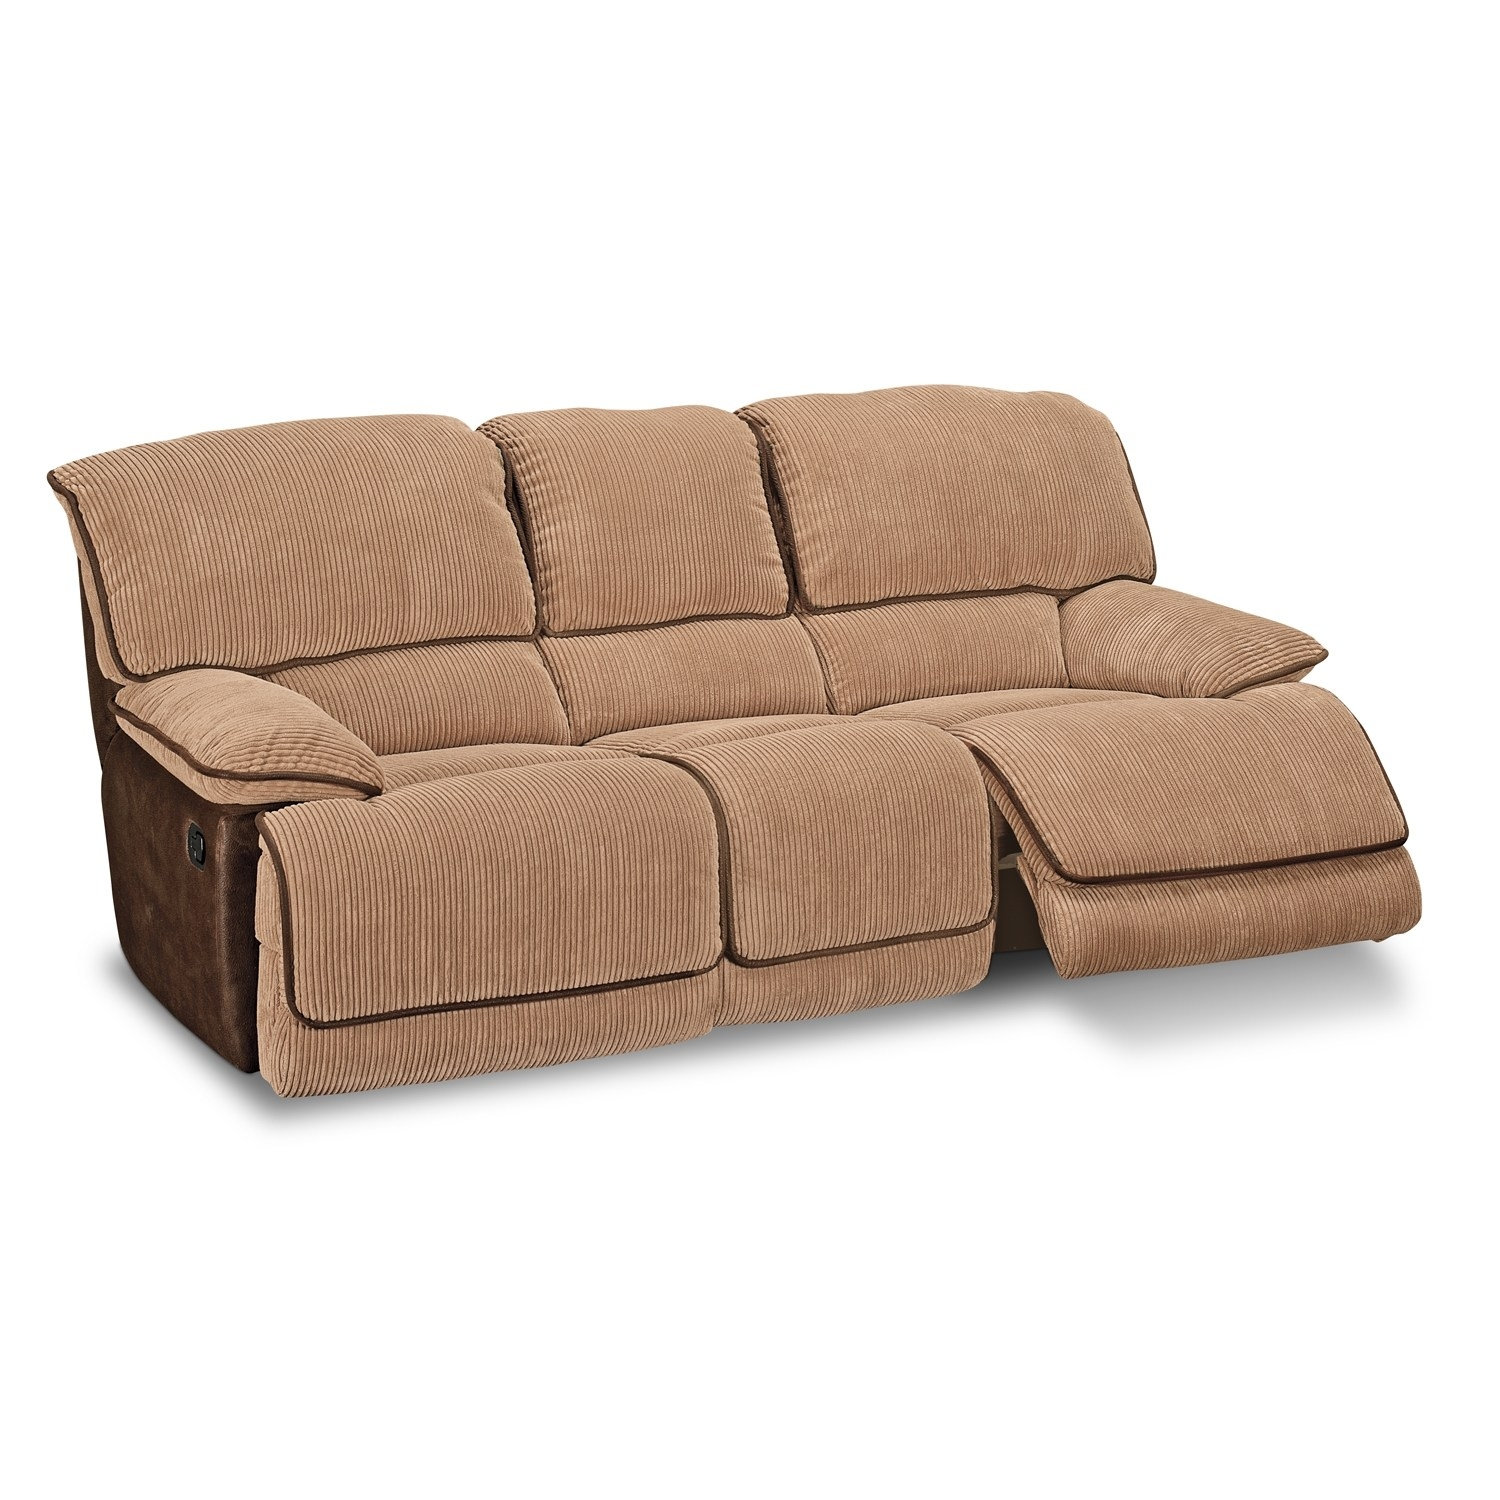 Sofa Bed Big Lots Corner Sofa Beds Futons Chair Beds Modern Inside Big Lots Sofa Bed (Image 11 of 15)